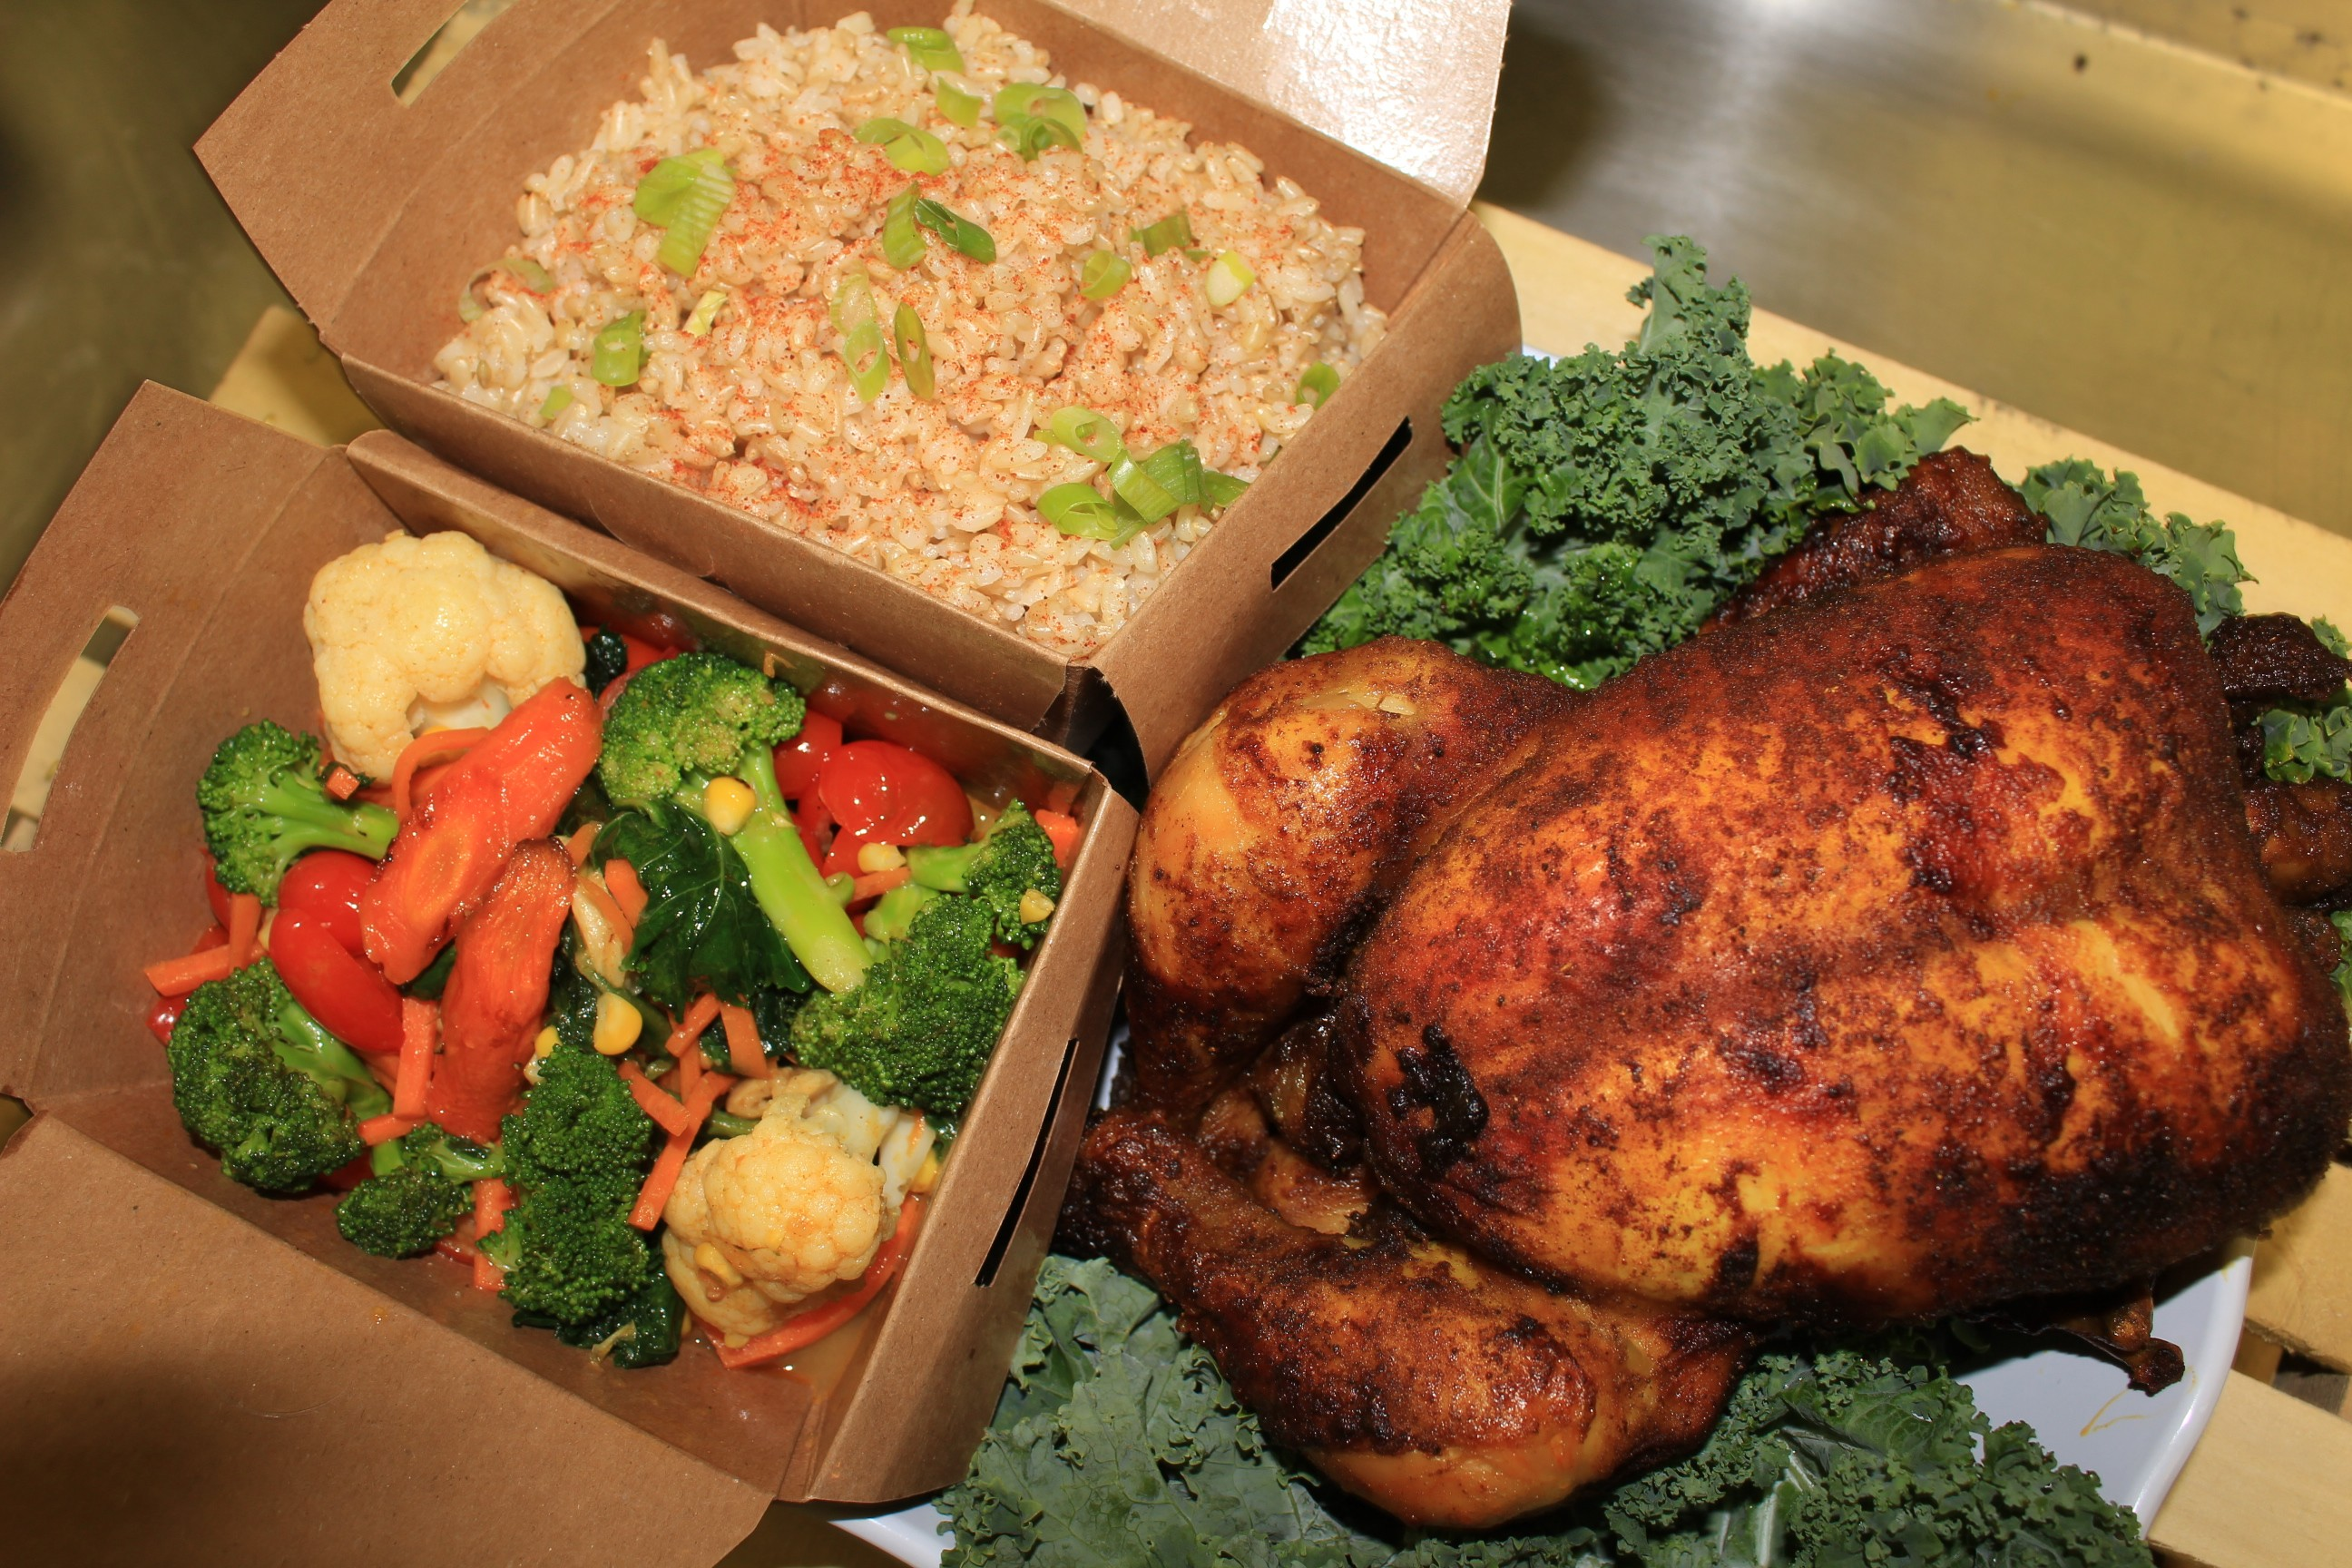 The menu at True Food & Juice Co. includes breakfast items like acai bowls, wraps and sandwiches for lunch, and even a whole spiced organic chicken ($16) as a dinner option.